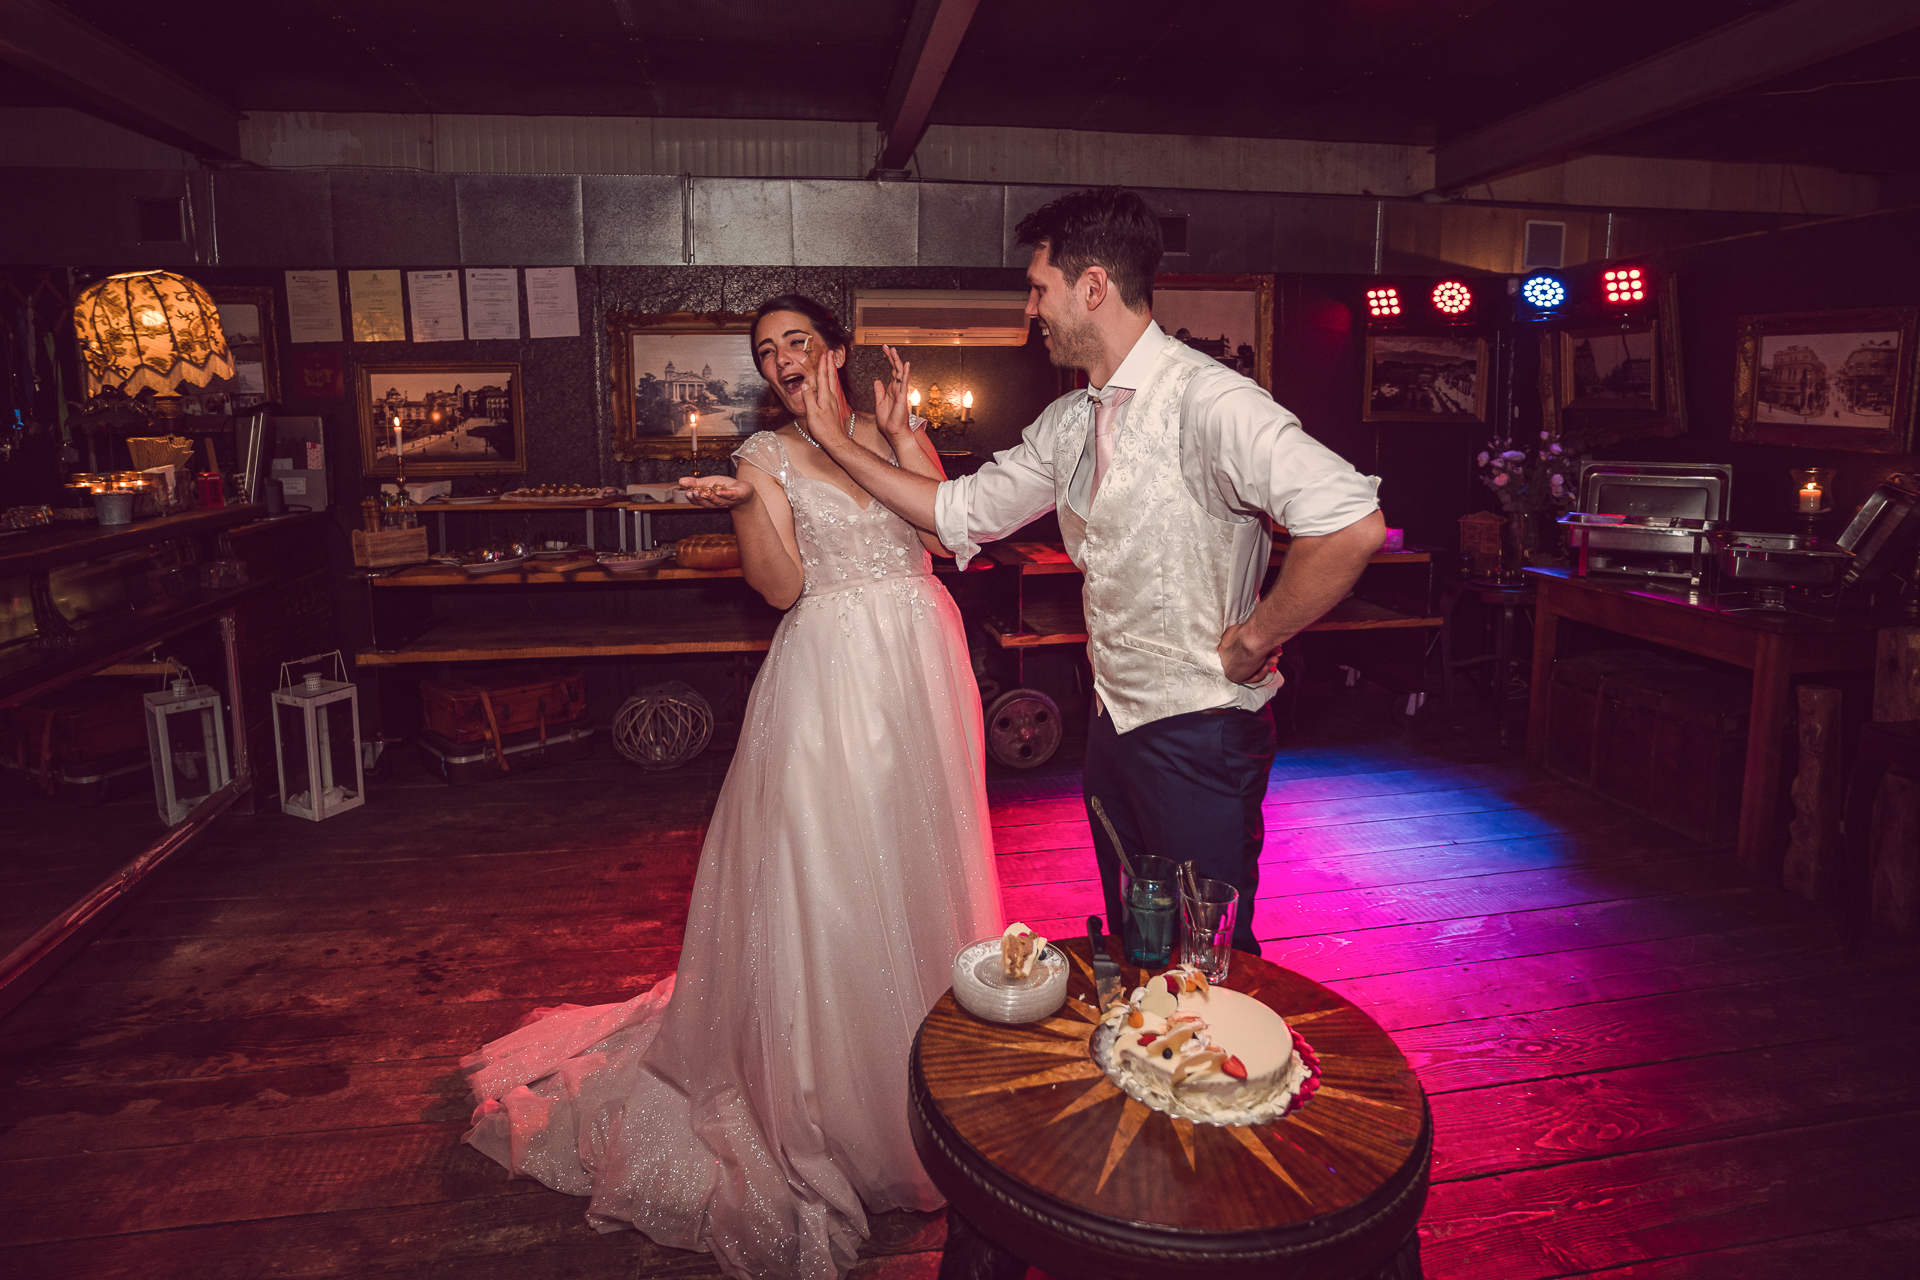 Cozy Bar, Sofia Wedding Reception Venue Image | In the playful atmosphere, the groom smears cake along his bride's cheek